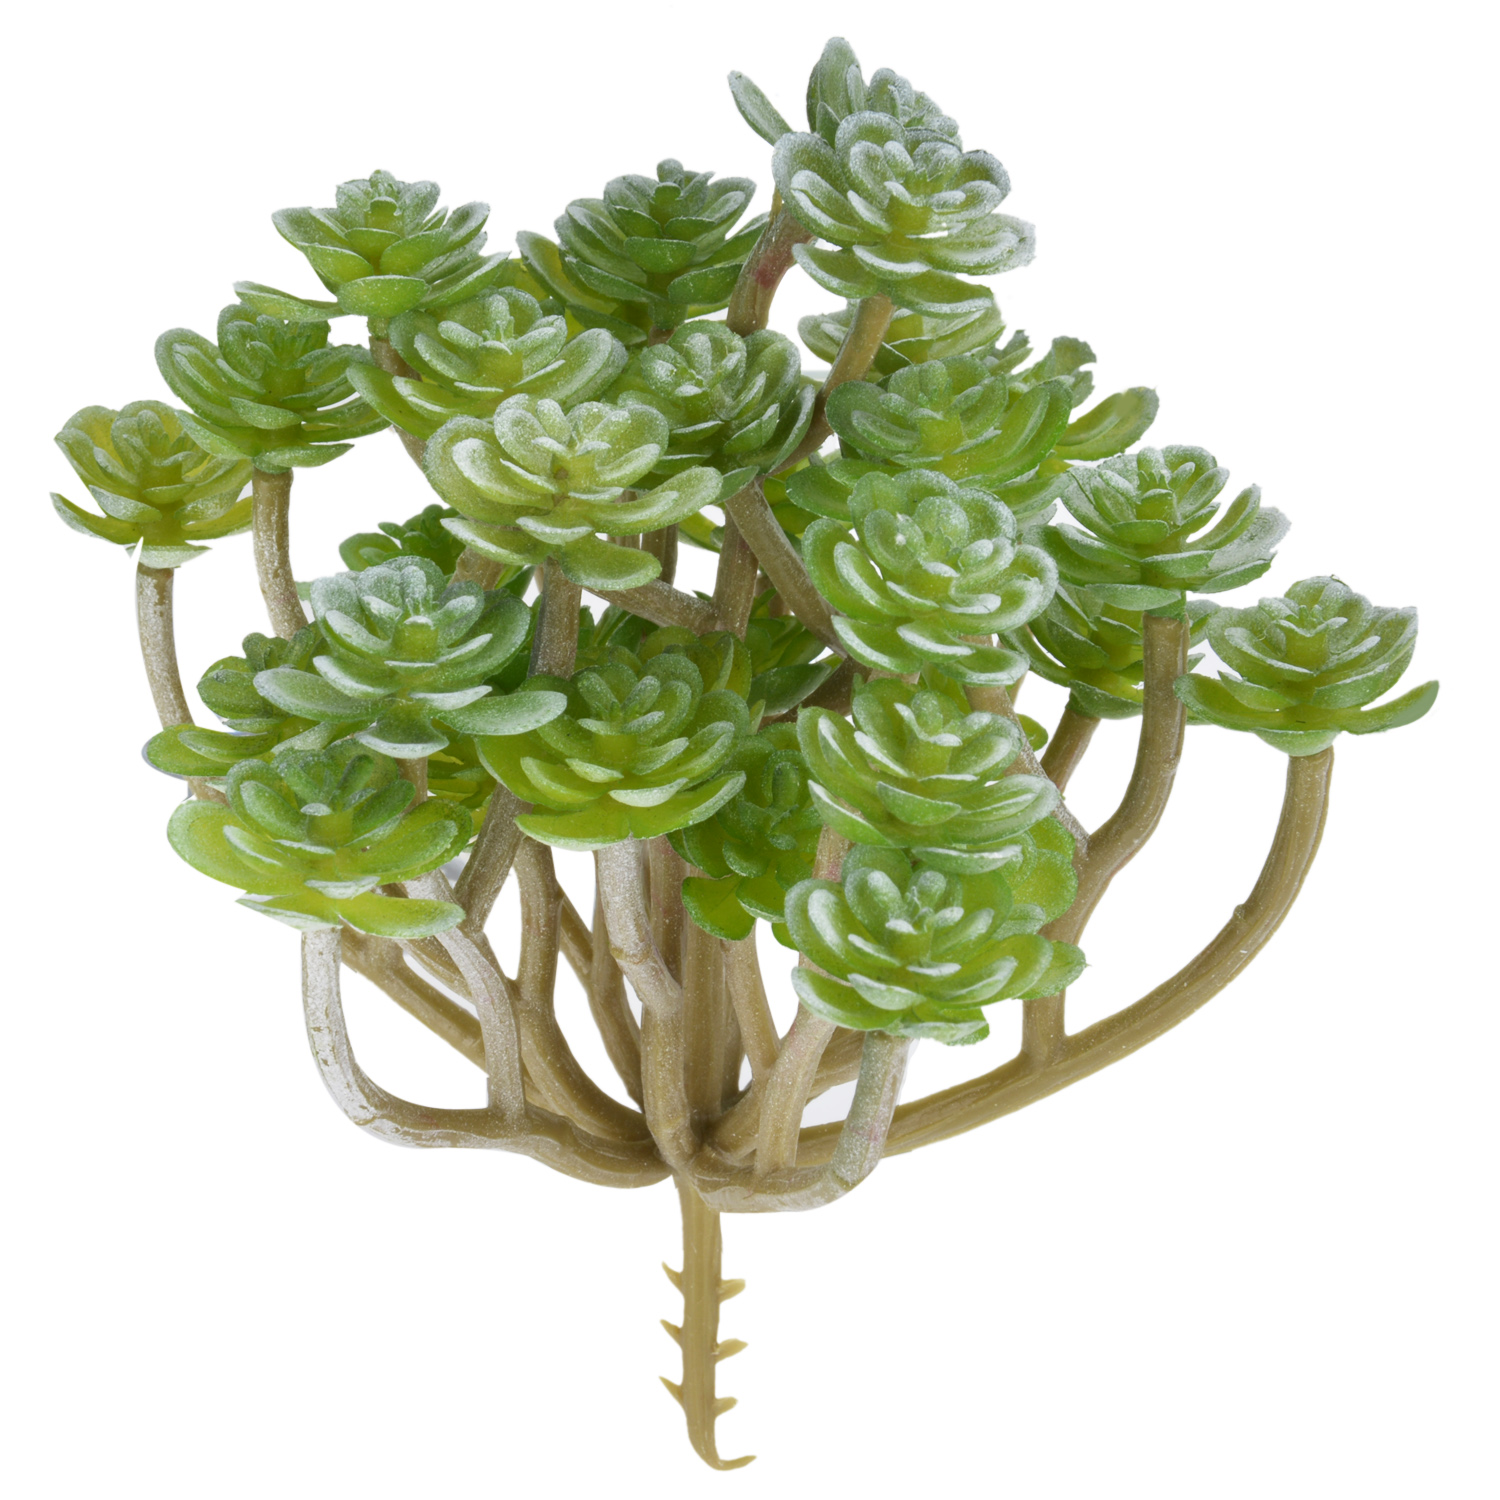 1pc Artificial Succulent Green Flocking Artificial Succulents Plants Bonsai Desktop Fake Plants Without Pot Wedding Decoration